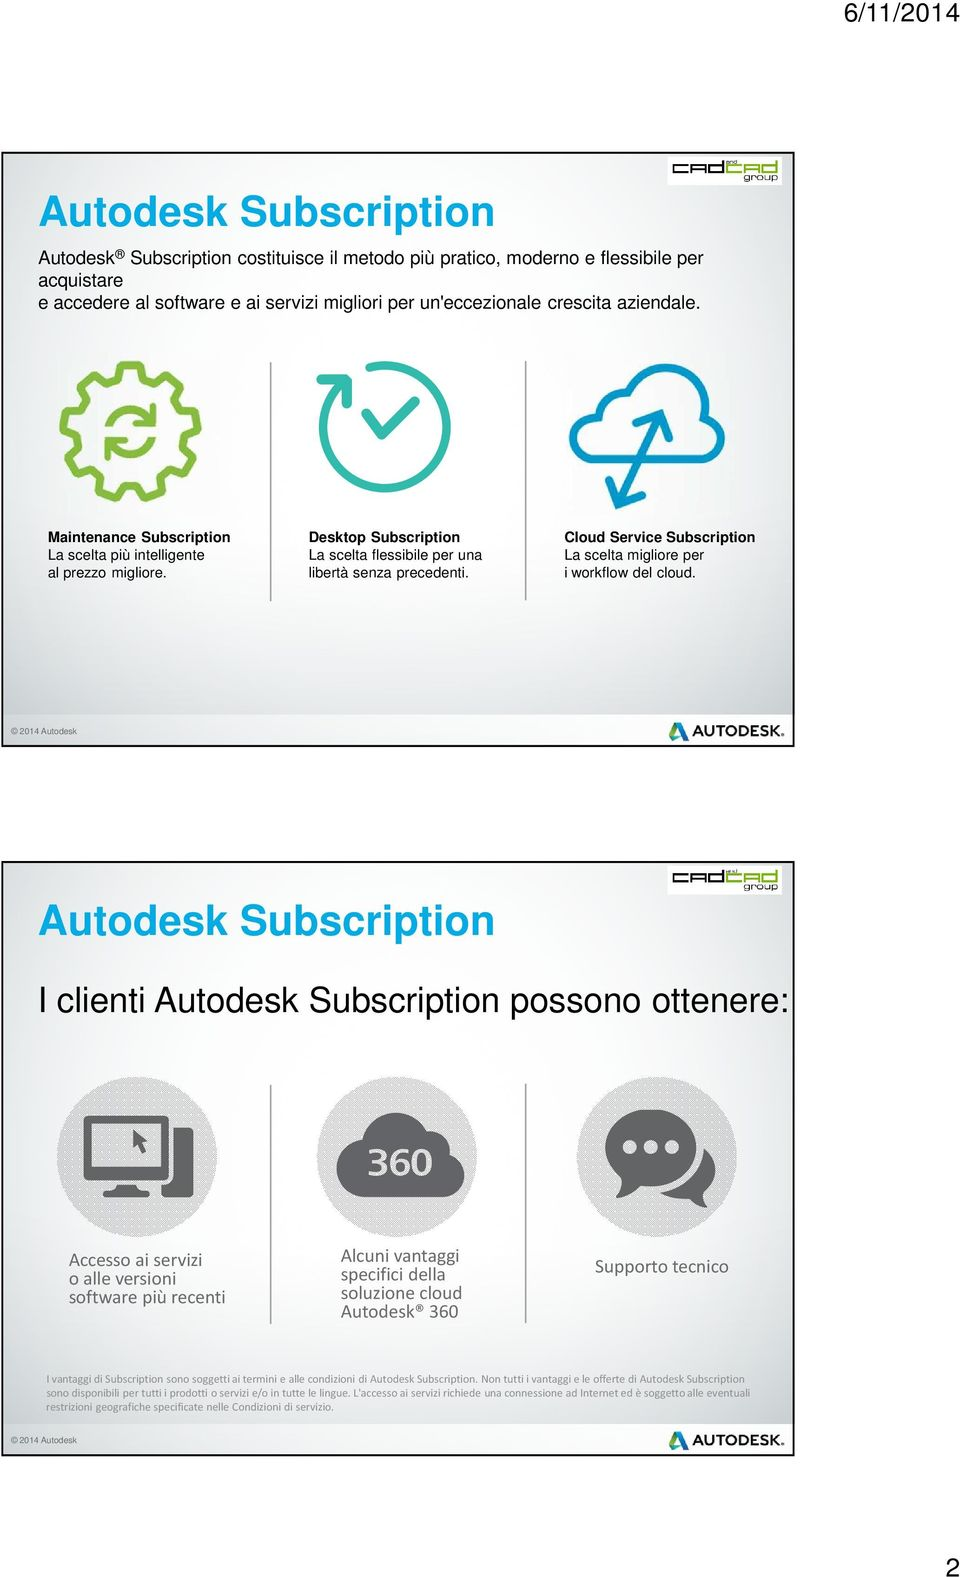 Cloud Service Subscription La scelta migliore per i workflow del cloud.